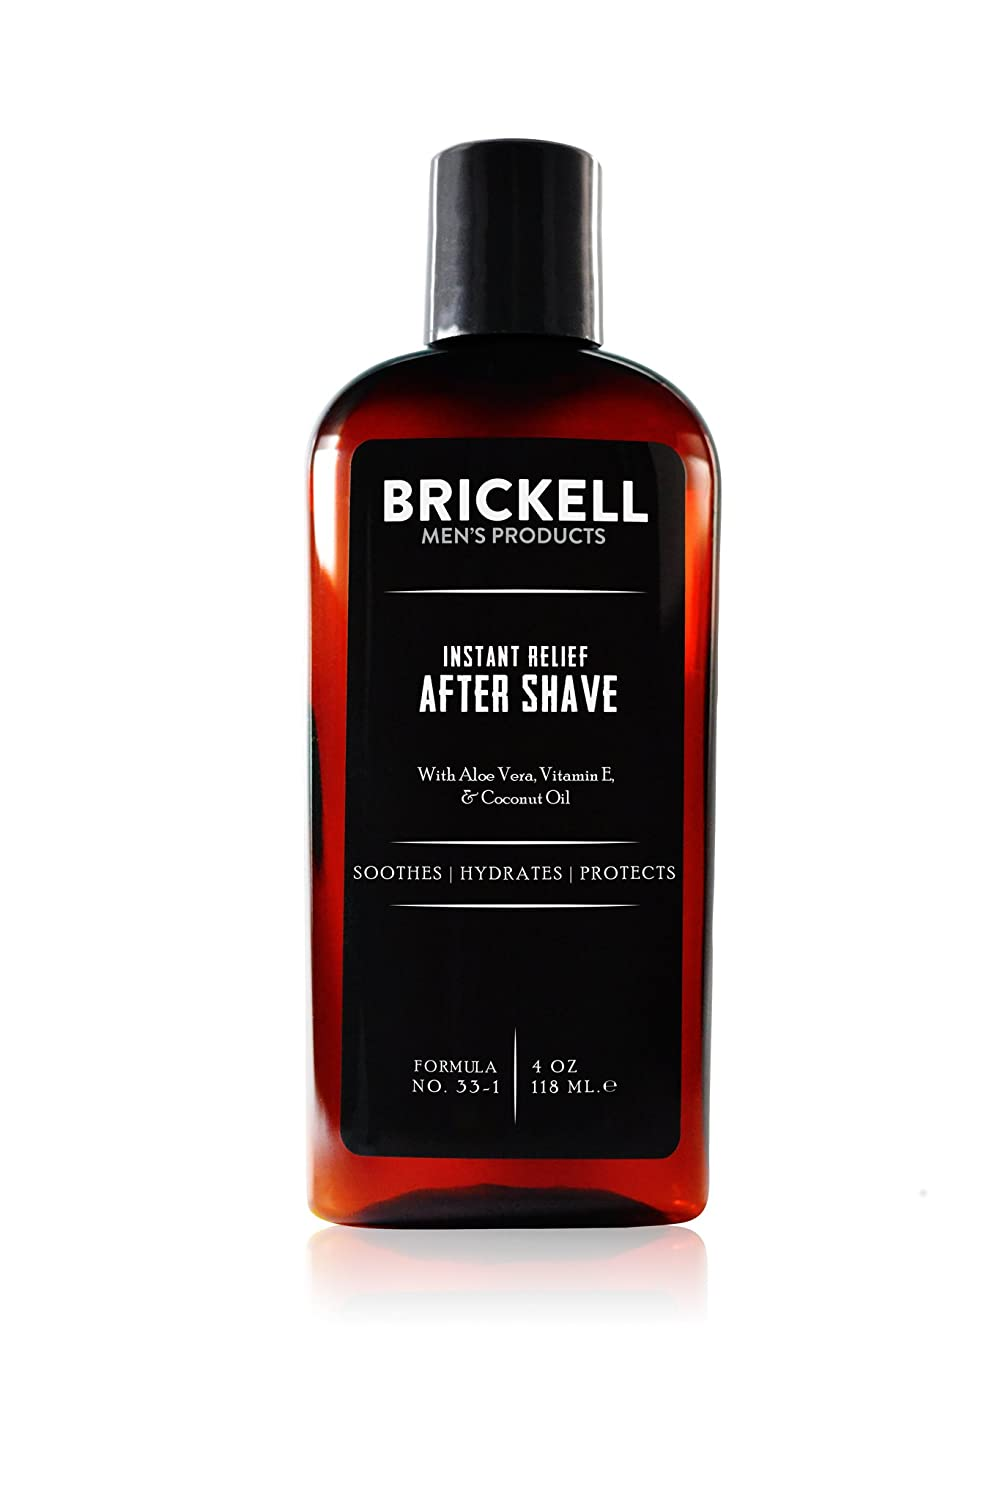 Brickell Men's Instant Relief Aftershave for Men – Natural - 2 Ounce - Scented Brickell Men's Products AST135